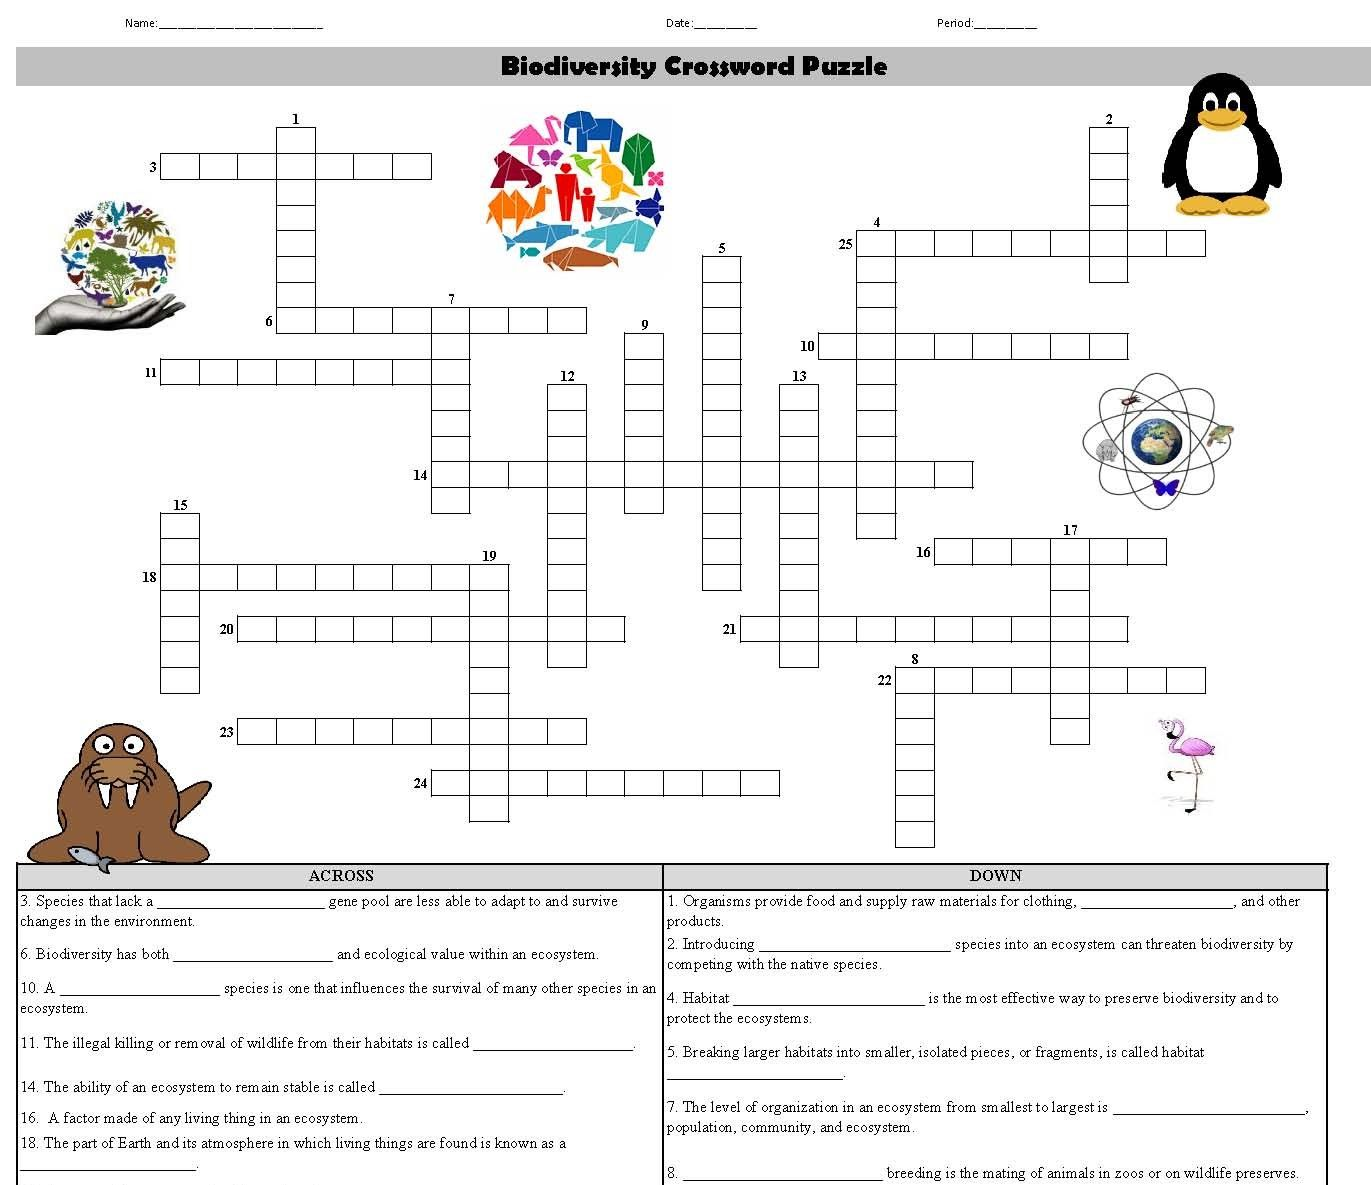 Biodiversity Crossword Puzzle